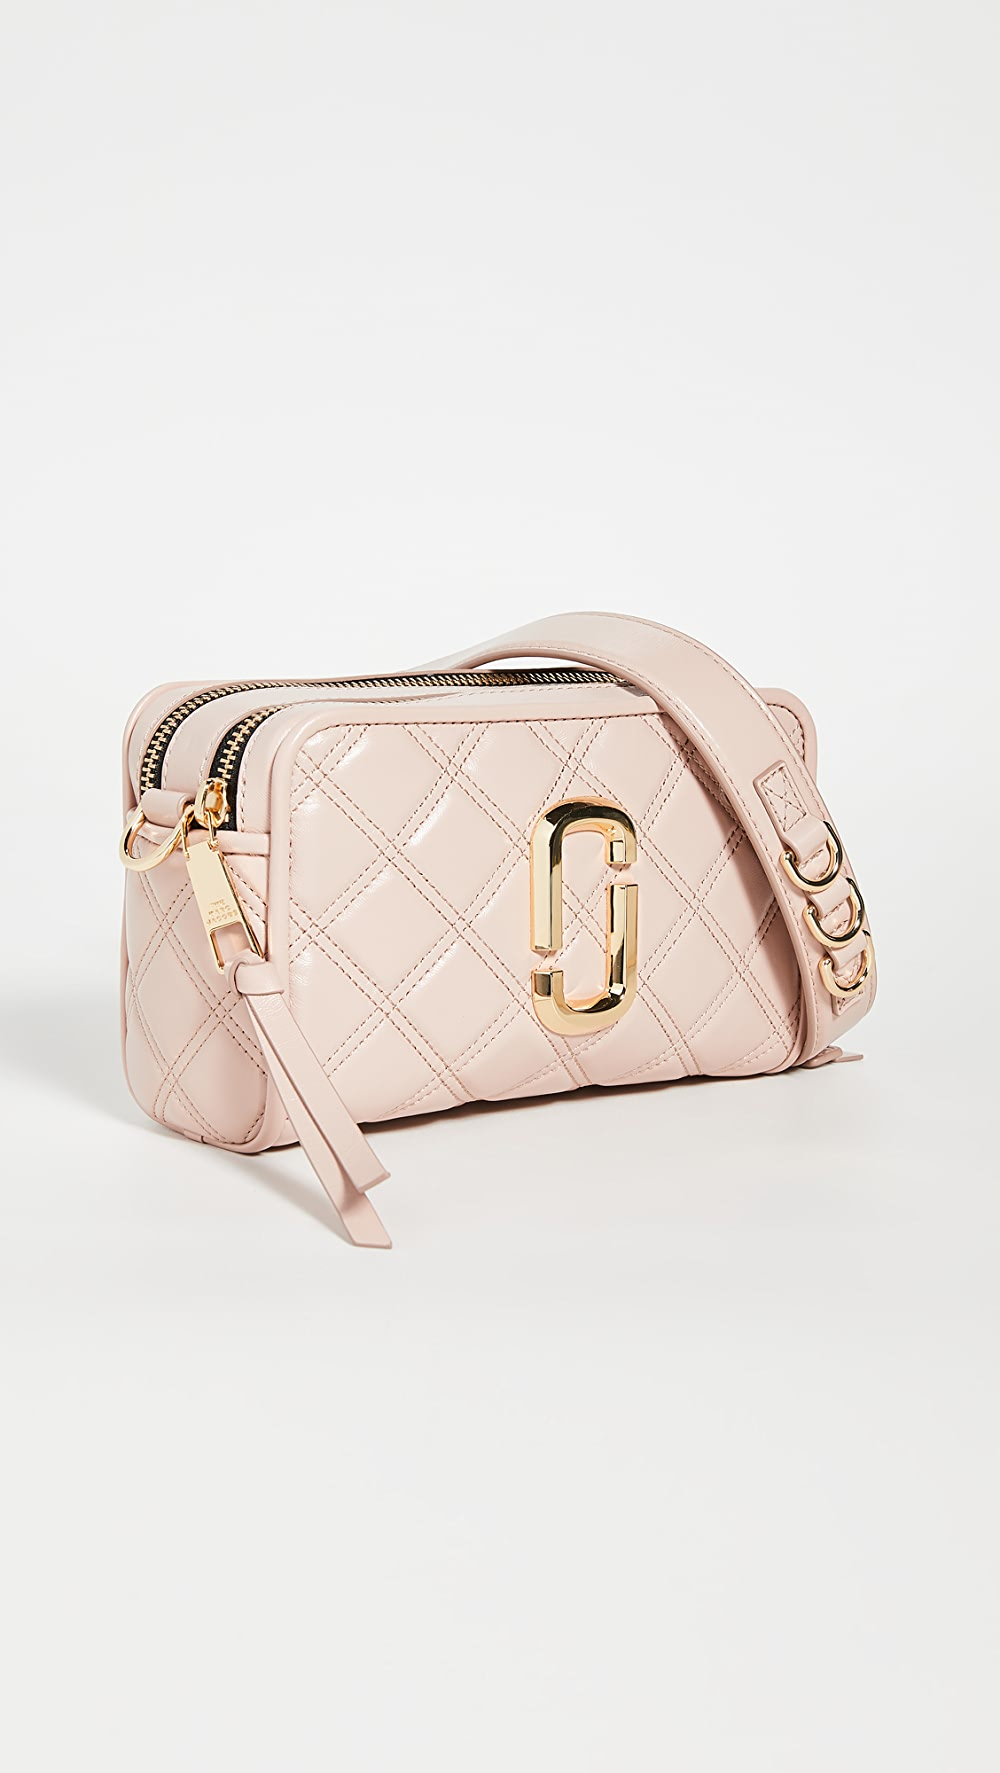 Hot Sale The Marc Jacobs - The Softshot 21 Bag Meticulous Dyeing Processes